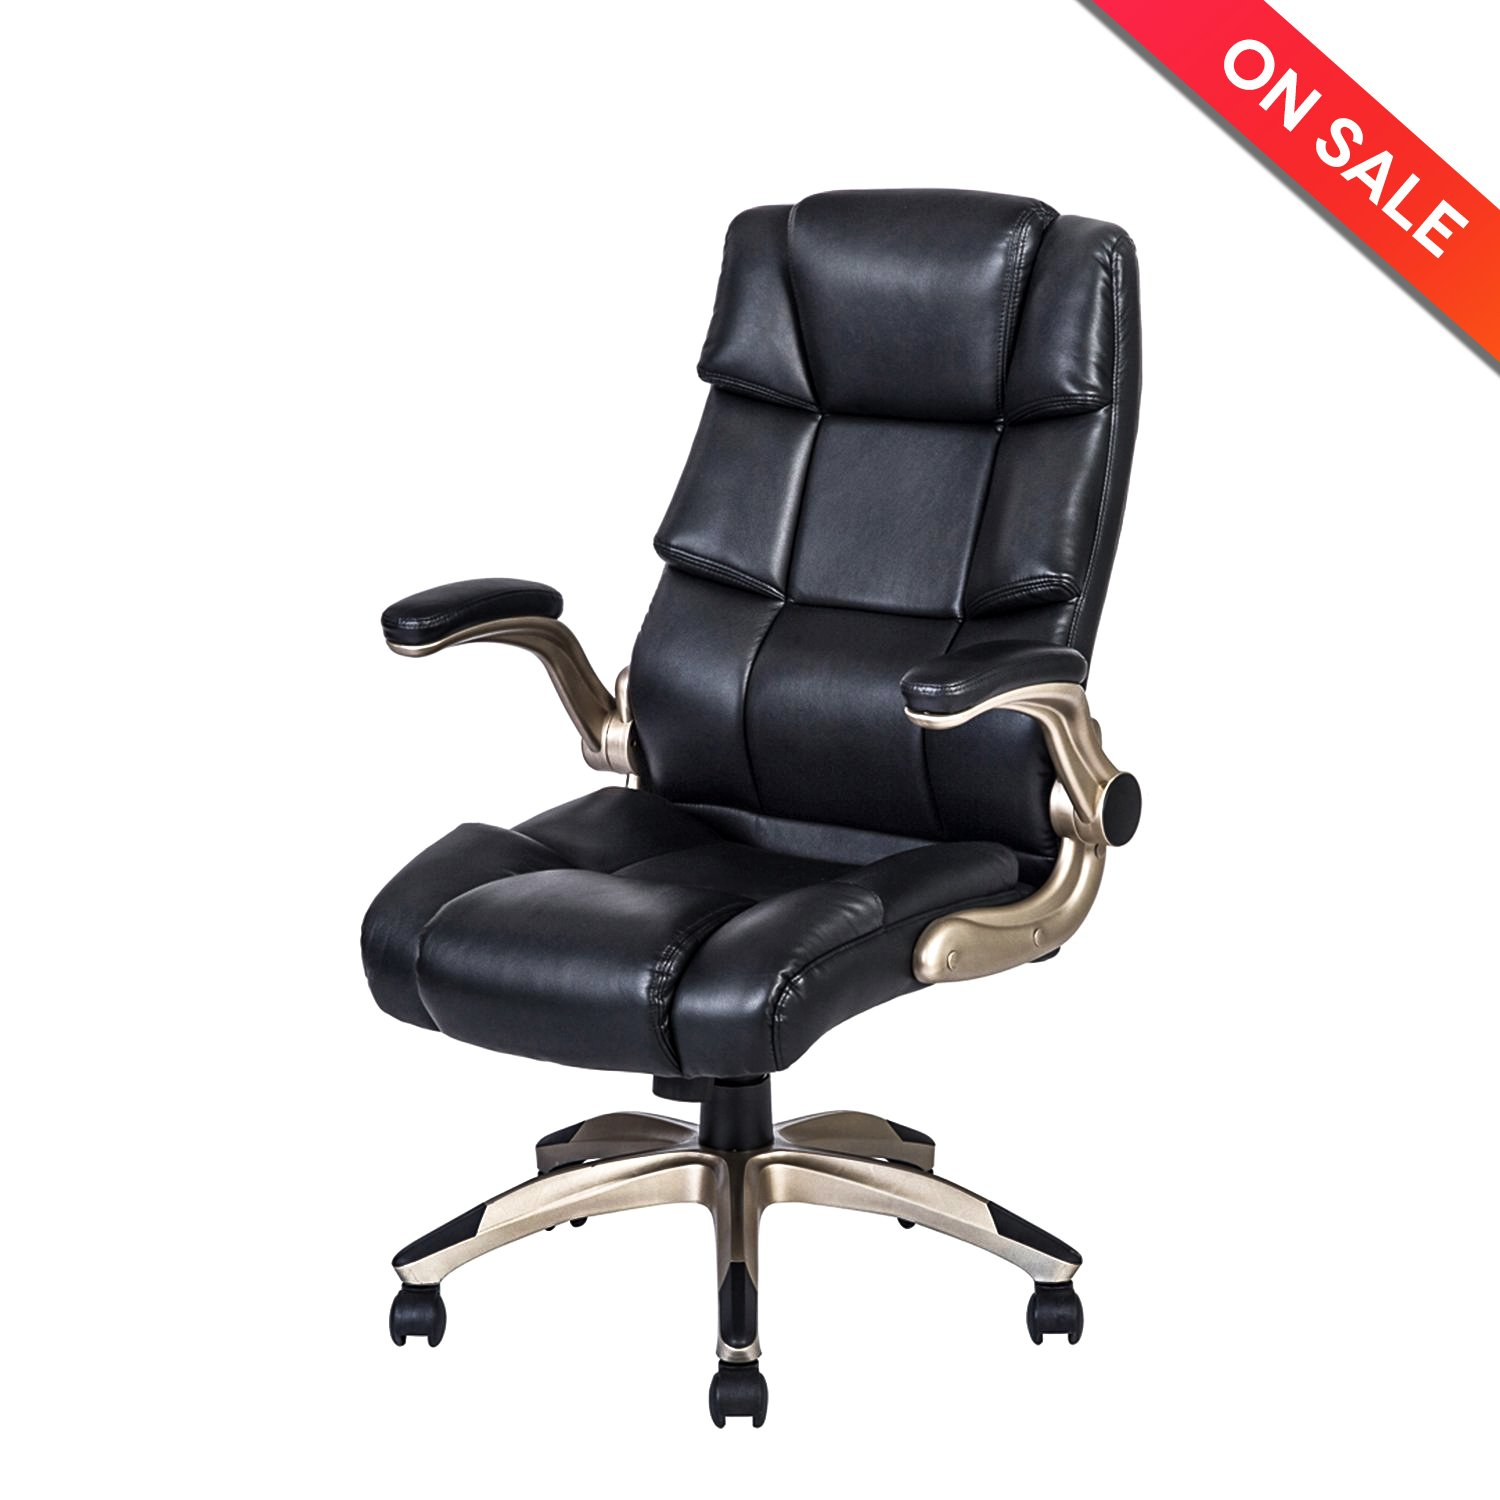 LCH Ergonomic High Back Leather Office Chair - Adjustable Padded Flip-Up Arms Executive Computer Desk Chair (BIMFA Certified)